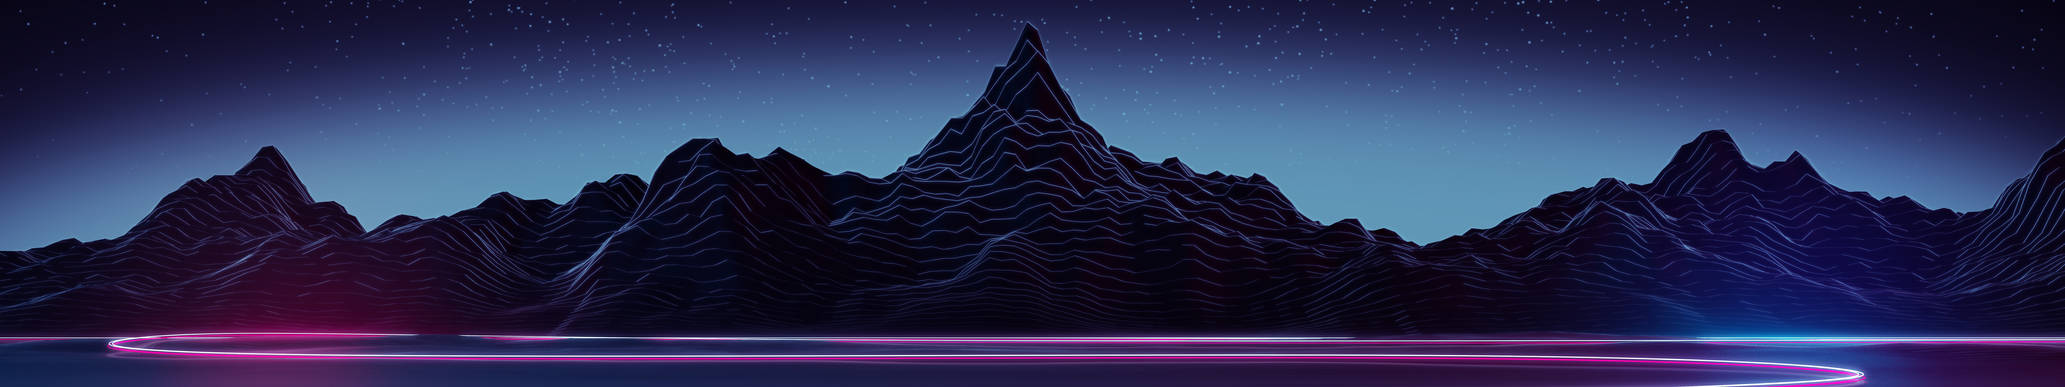 Highway (7680x1440) by AxiomDesign